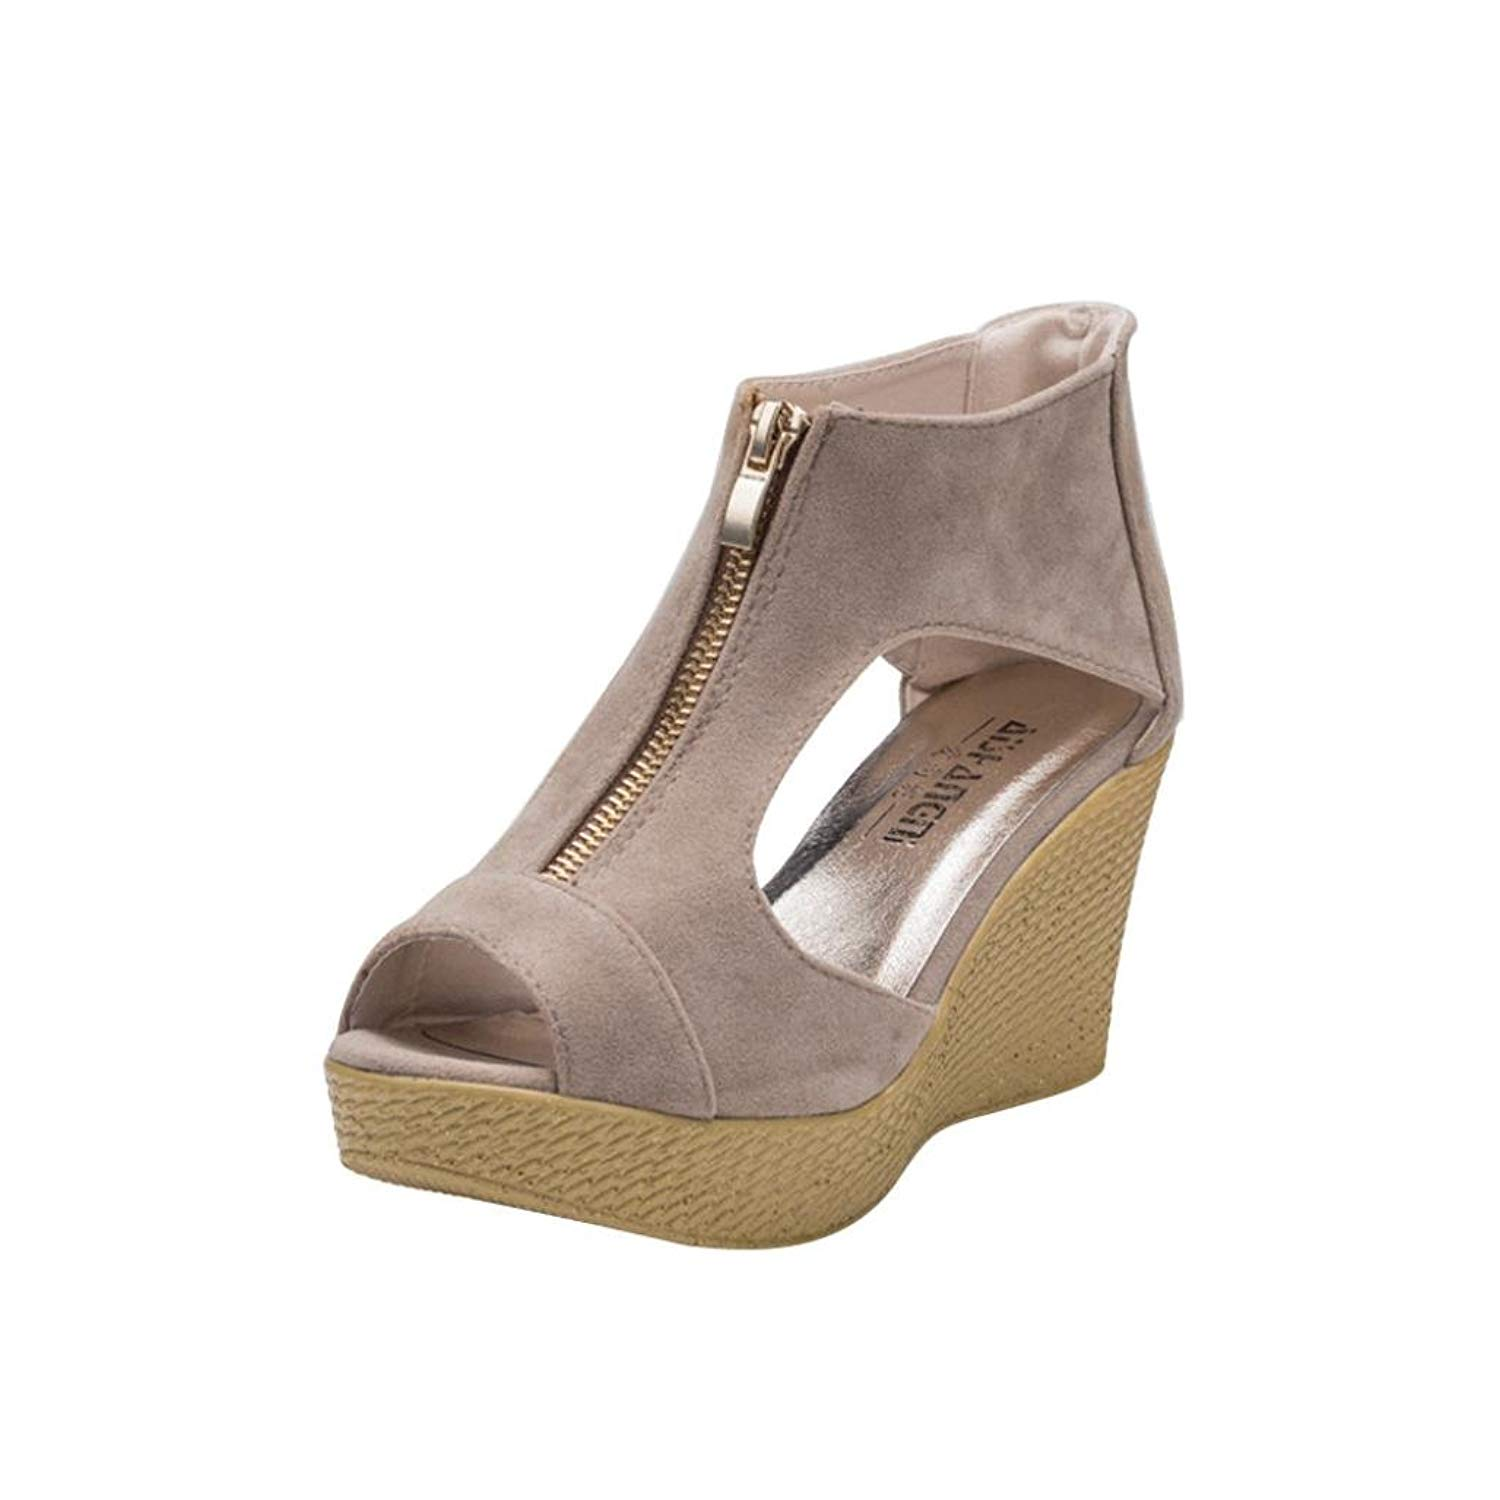 cf520aef99fe Get Quotations · Clearance Sale! ❤ Universal Bohemia Platform Sandal for  Women